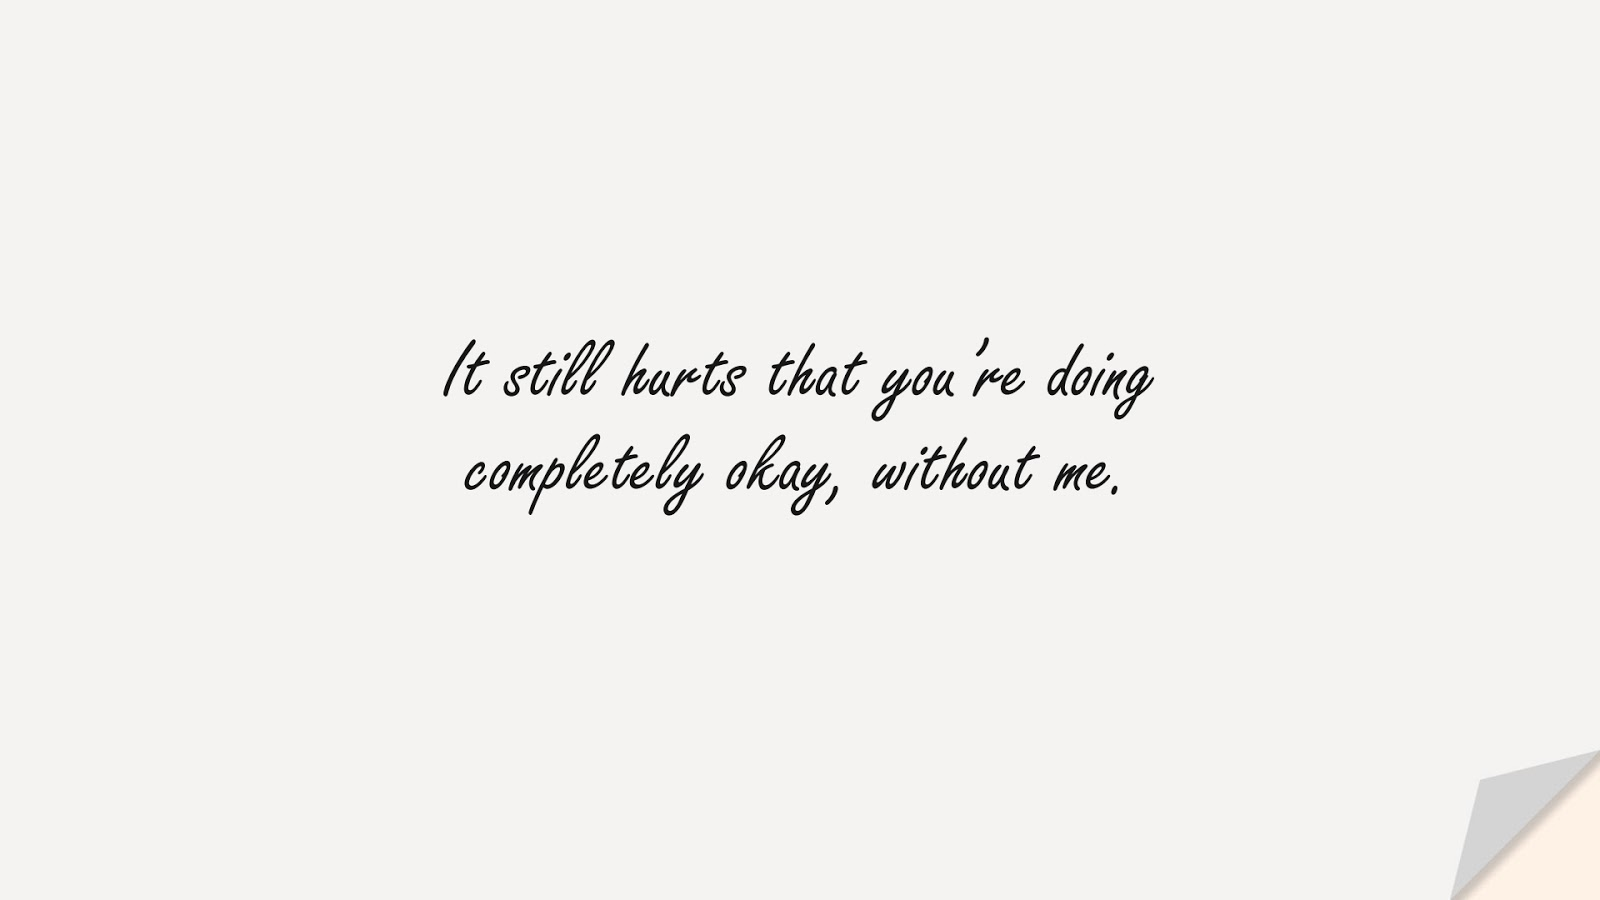 It still hurts that you're doing completely okay, without me.FALSE